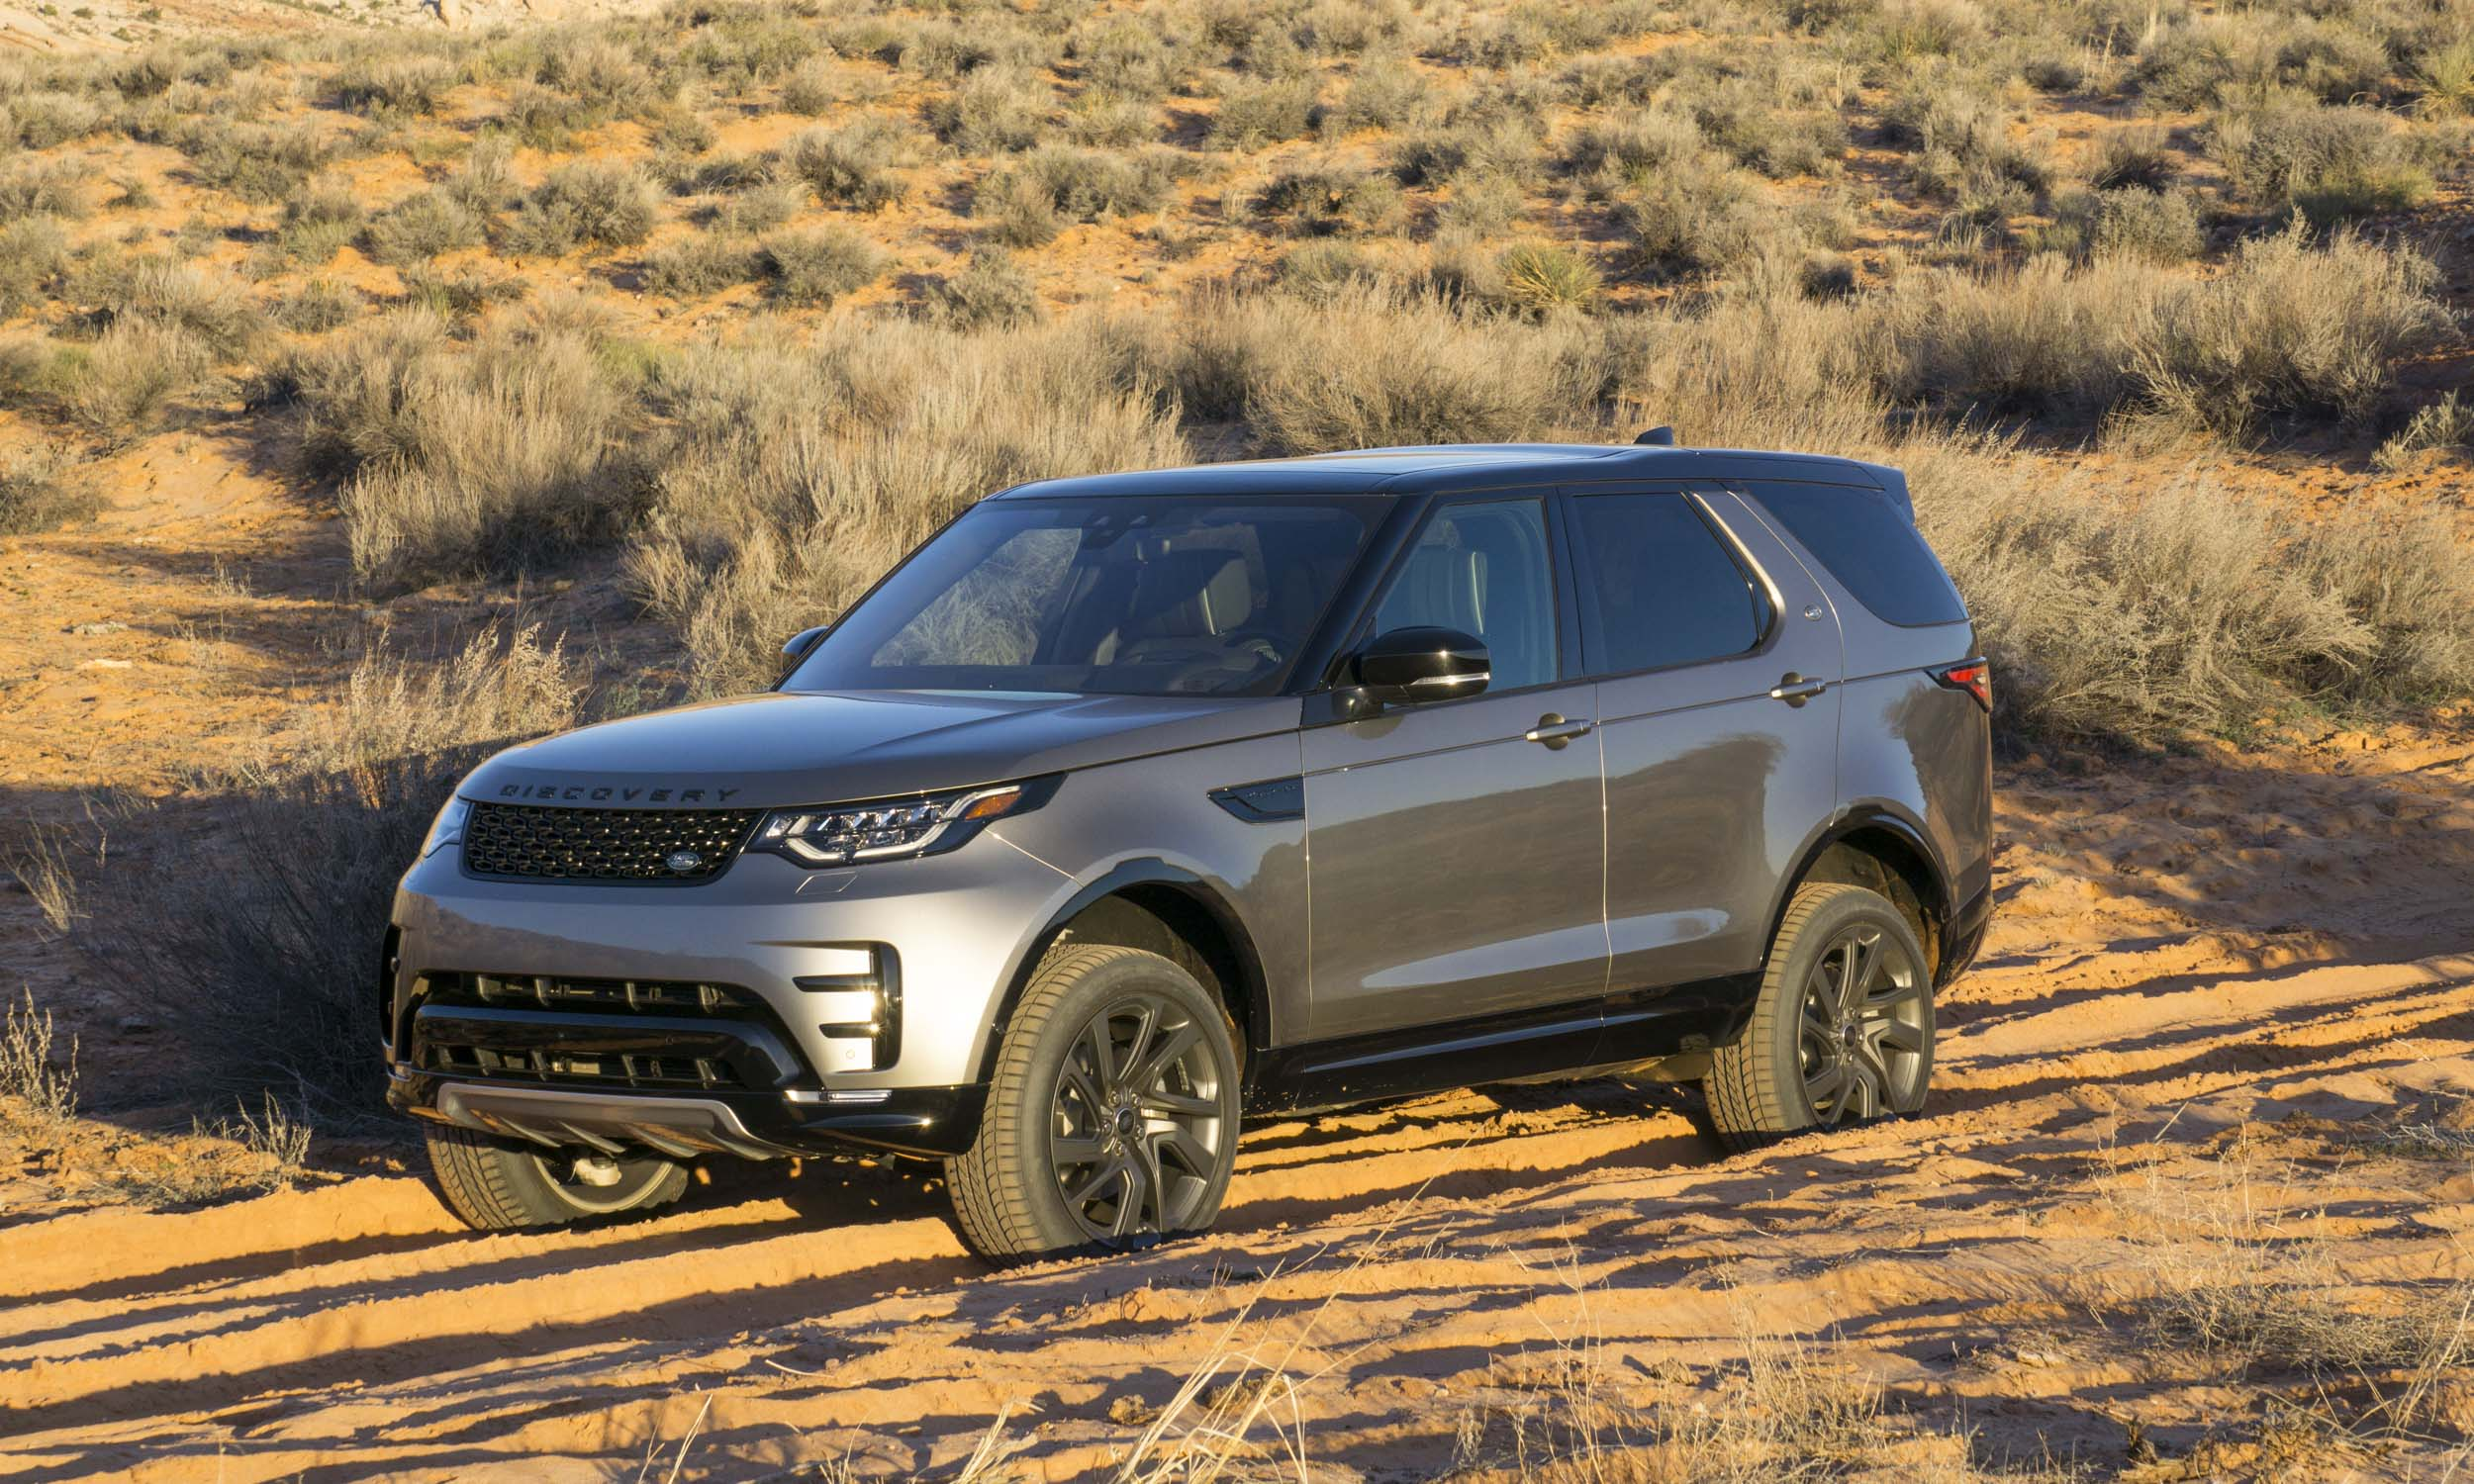 2017 land rover discovery first drive review  u00bb autonxt range rover discovery sport test range rover discovery sport tuning